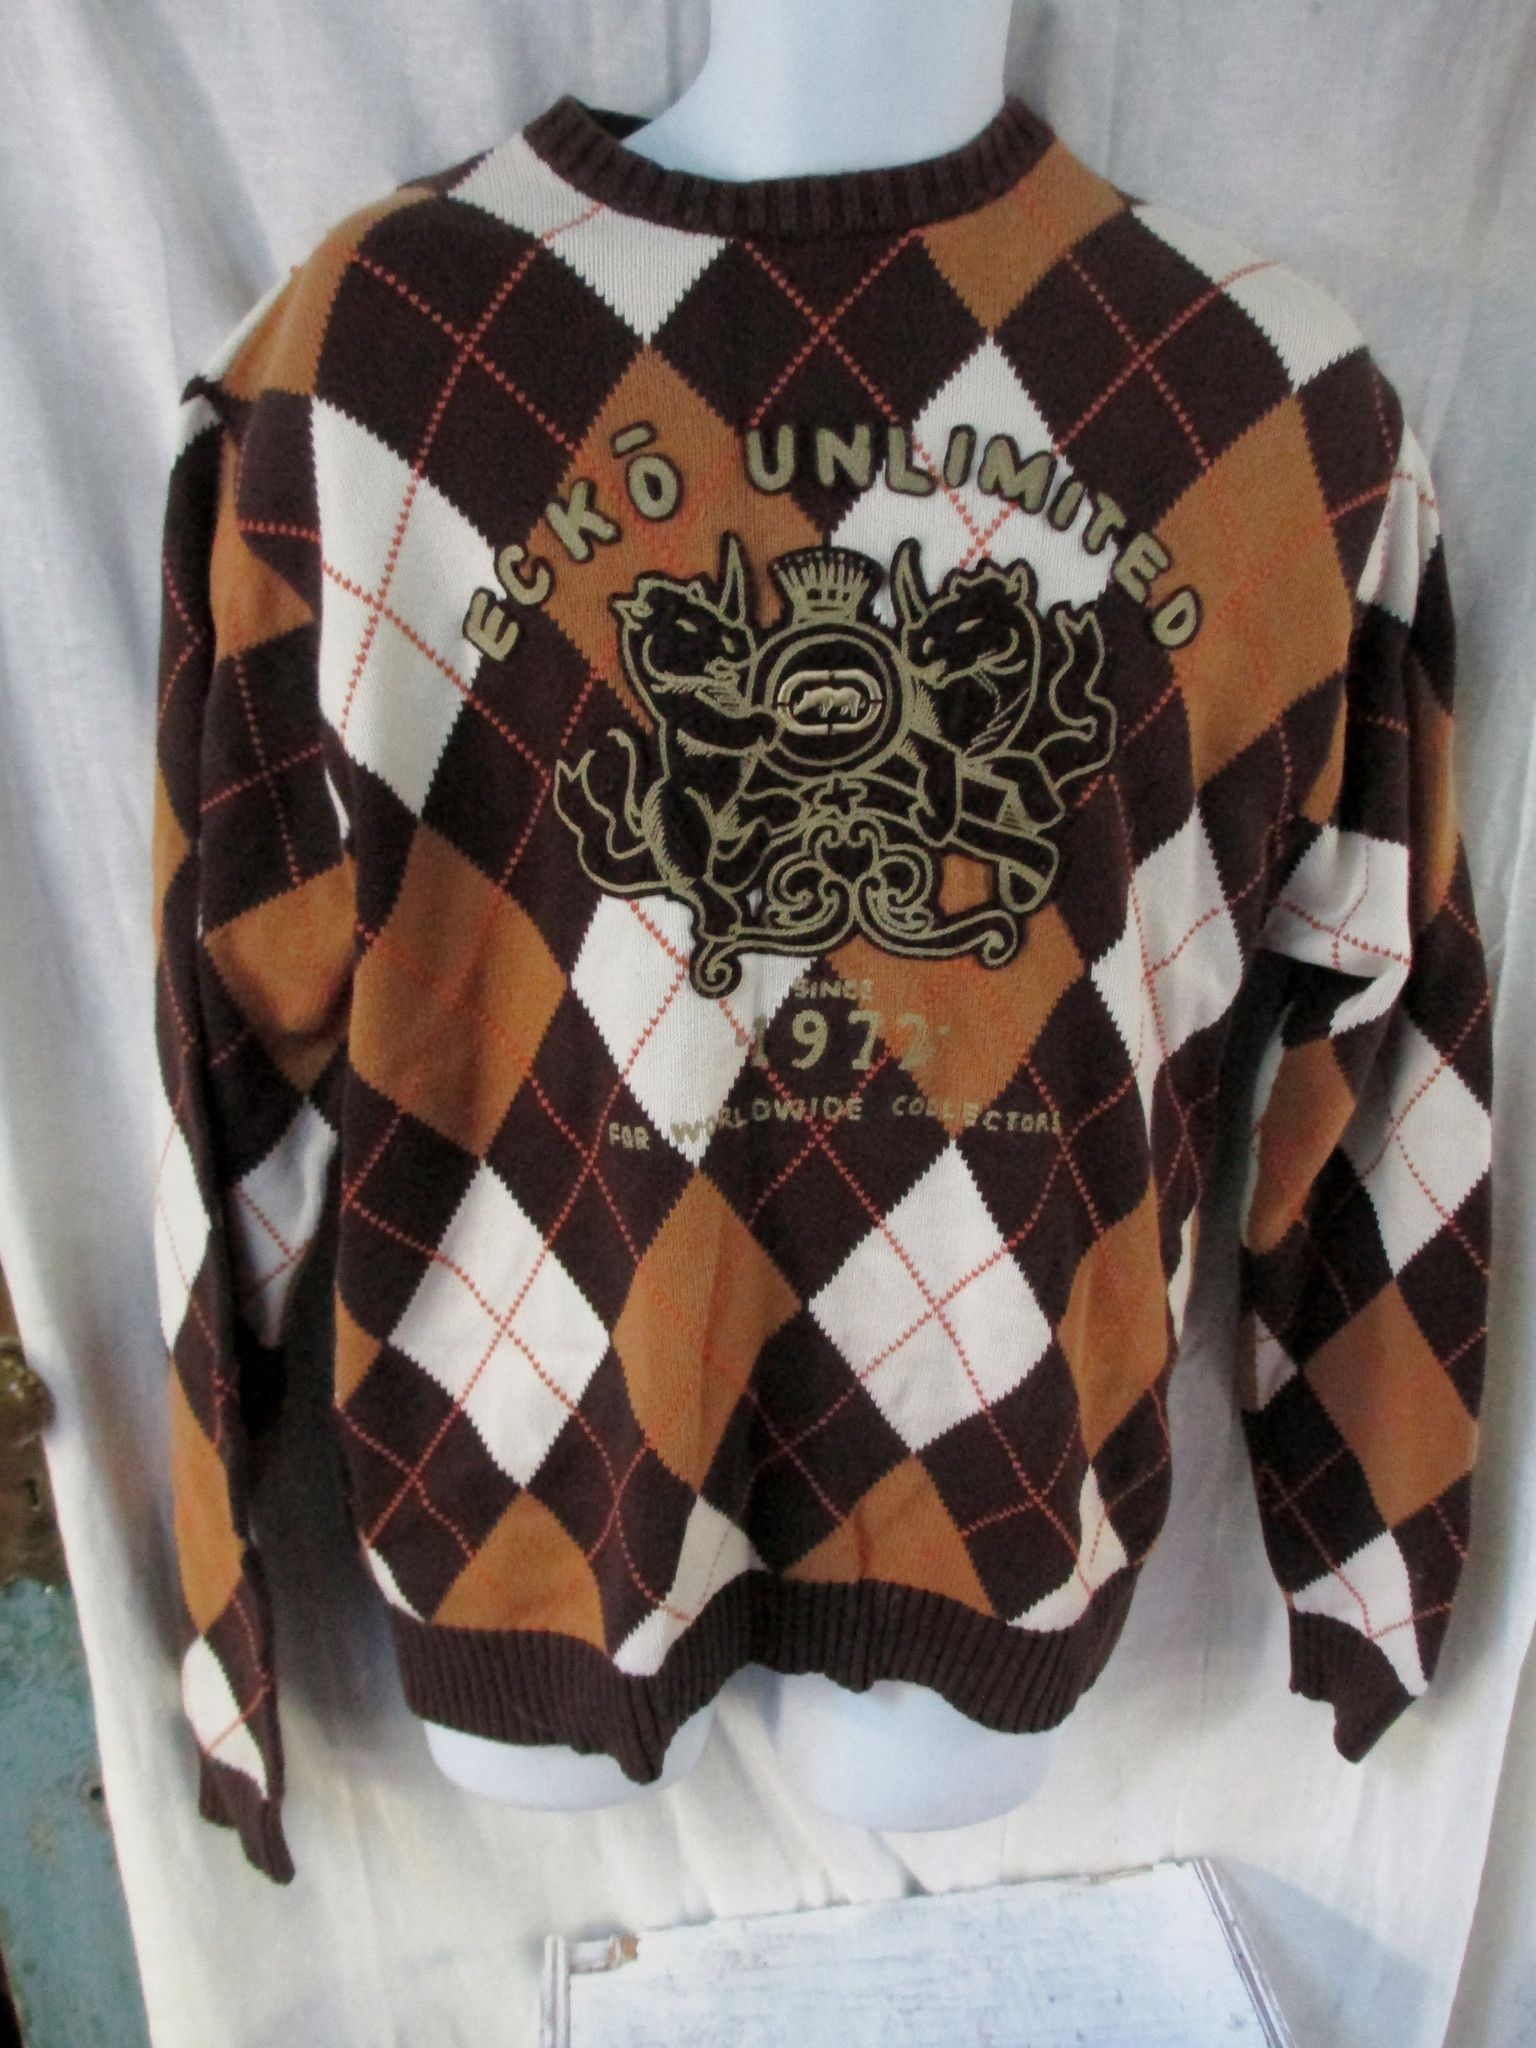 Mens ECKO UNLIMITED Knit Cotton SWEATER TOP Pullover Jackt RHINO ARGYLE BROWN M